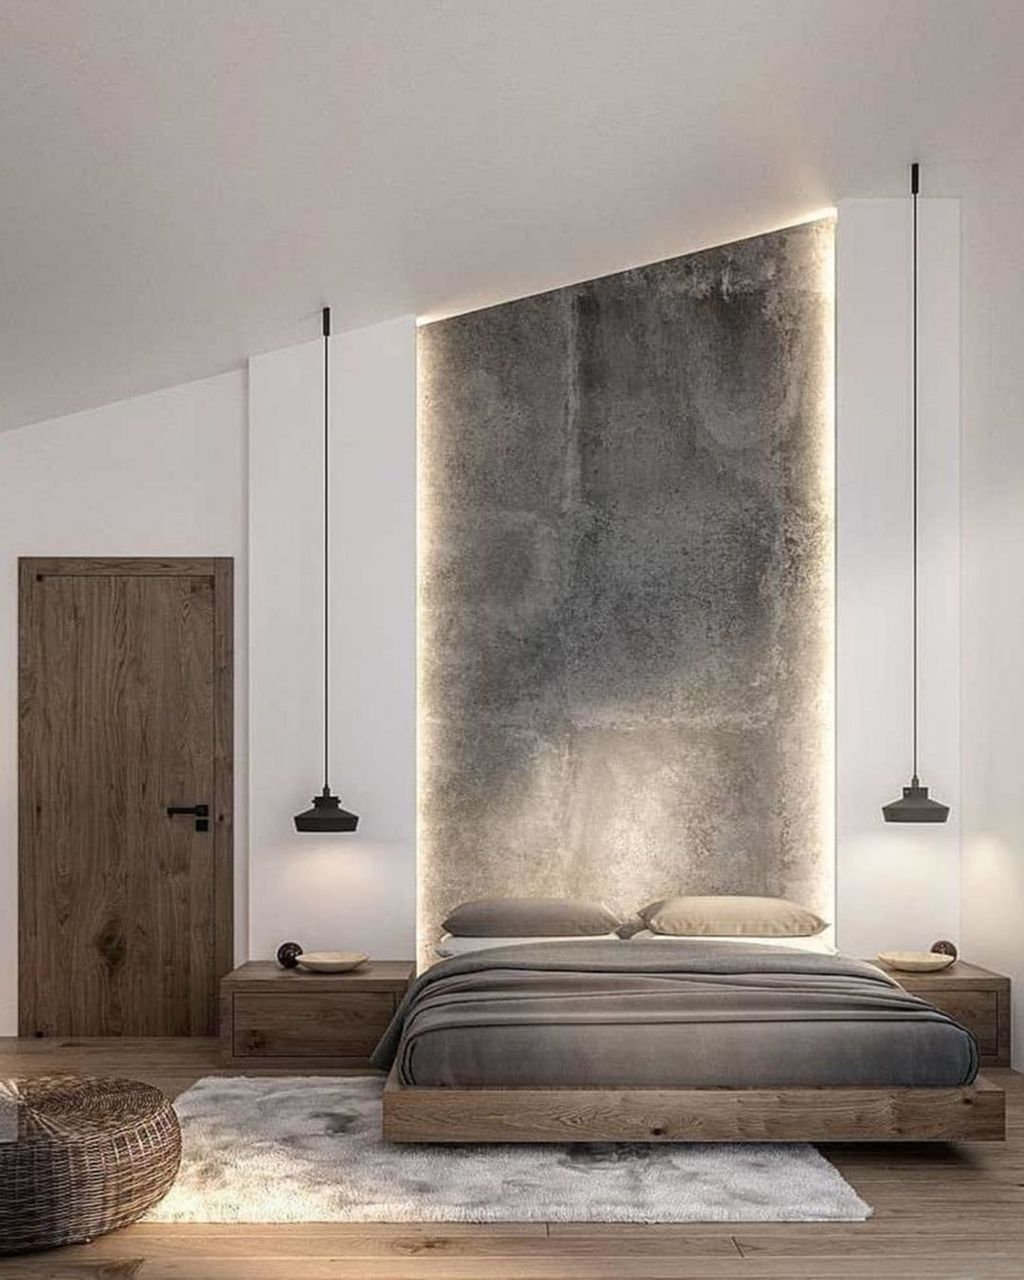 Wonderful Bedrooms Design Ideas With Vintage Touch That Will Thrill You10